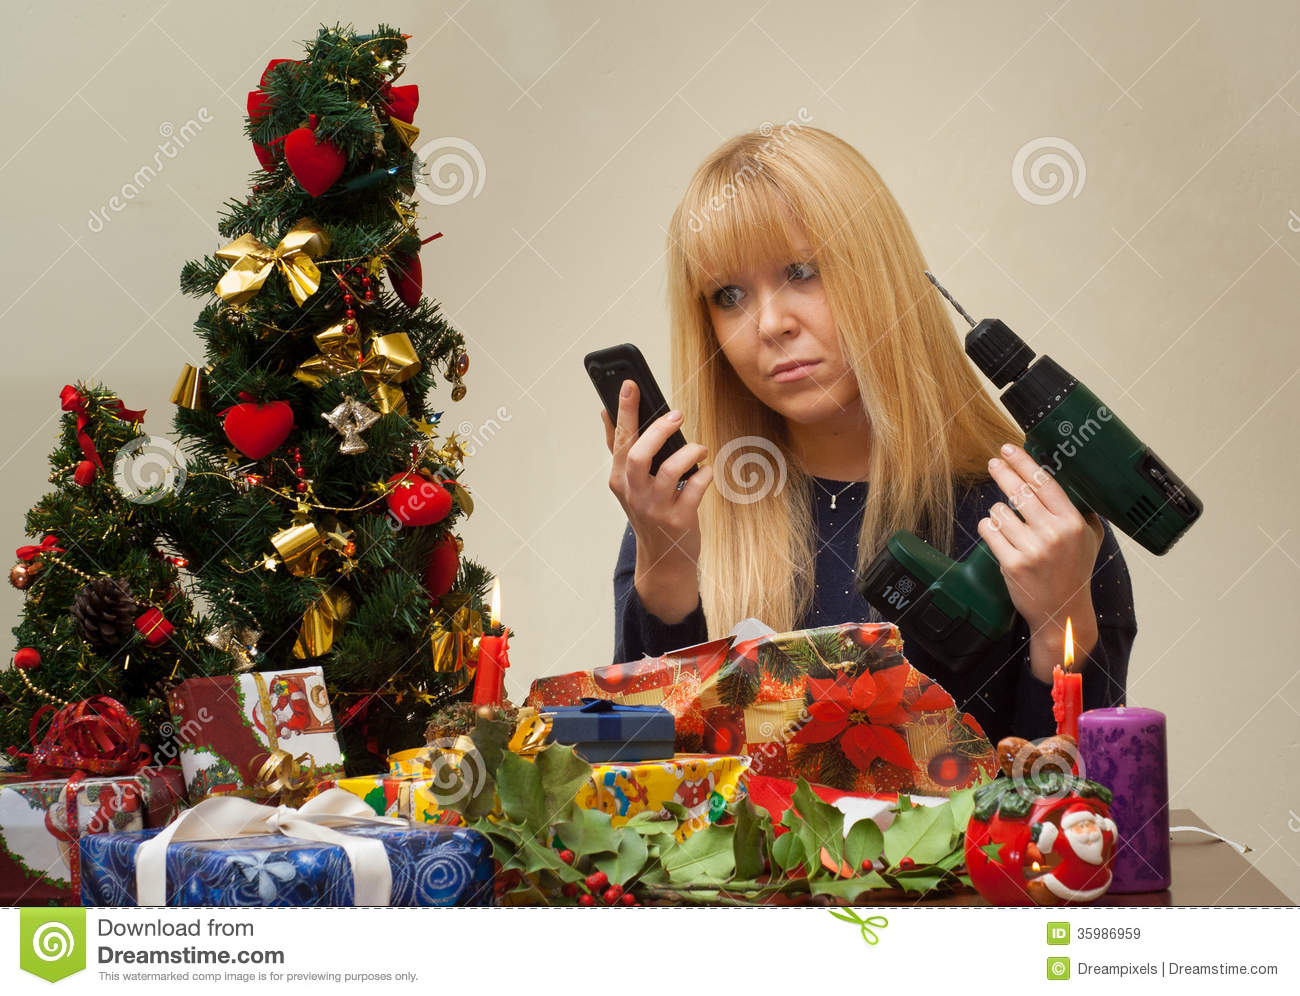 Girl Unhappy Over Wrong Christmas Gift Stock Image - Image of full ...